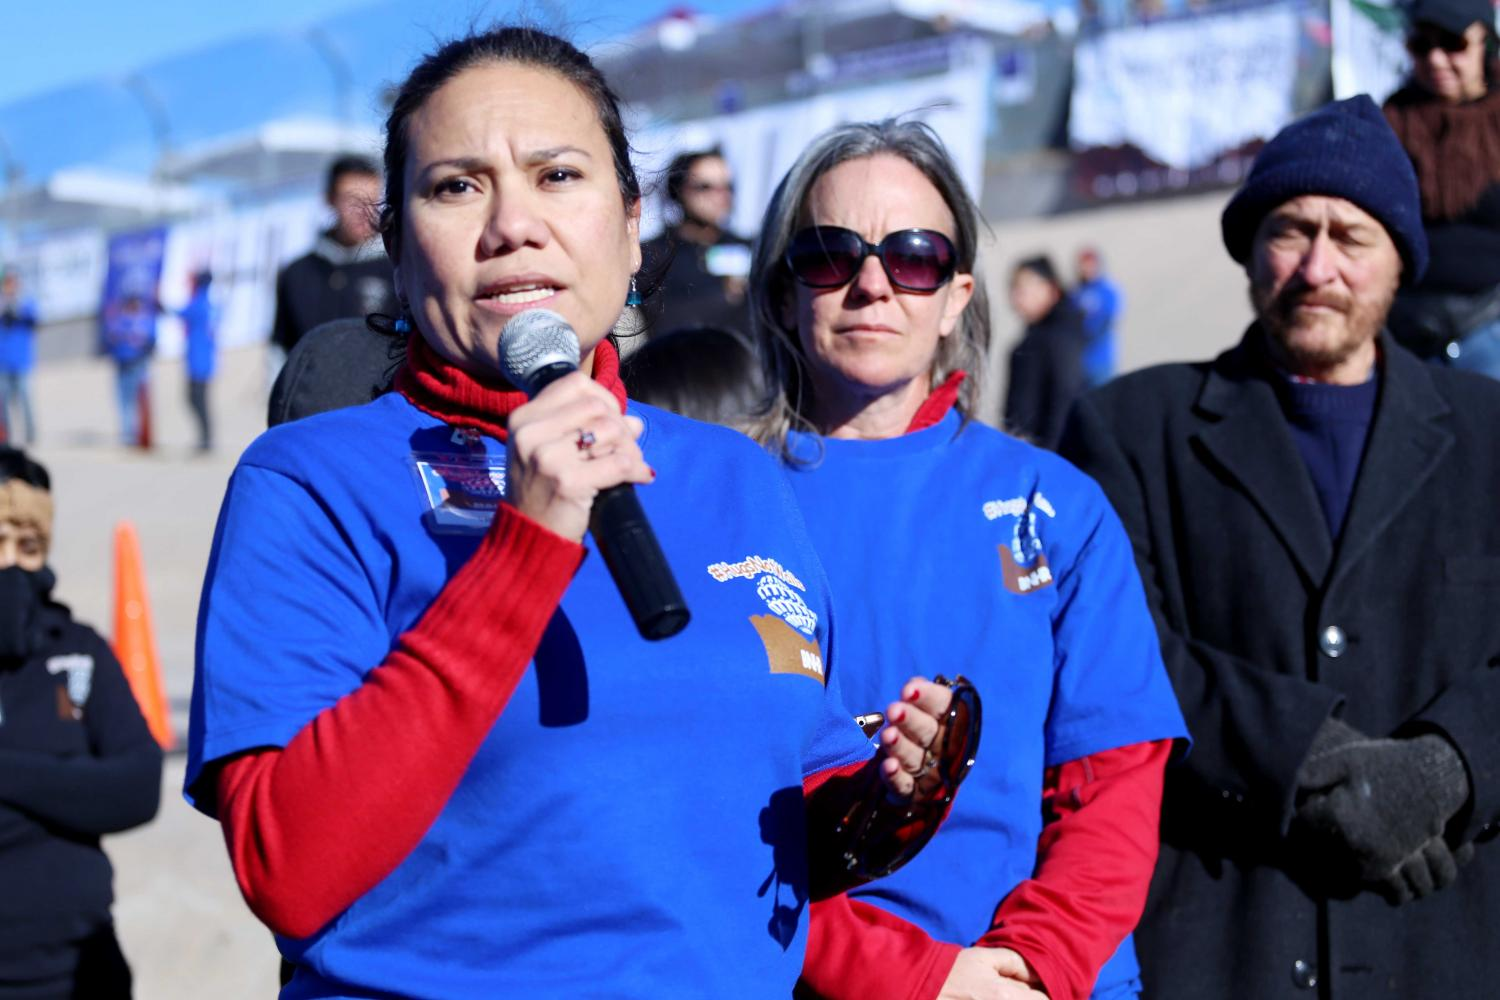 Veronica Escobar is running for Beto O'Rourke's spot for Texas' 16th Congressional District.